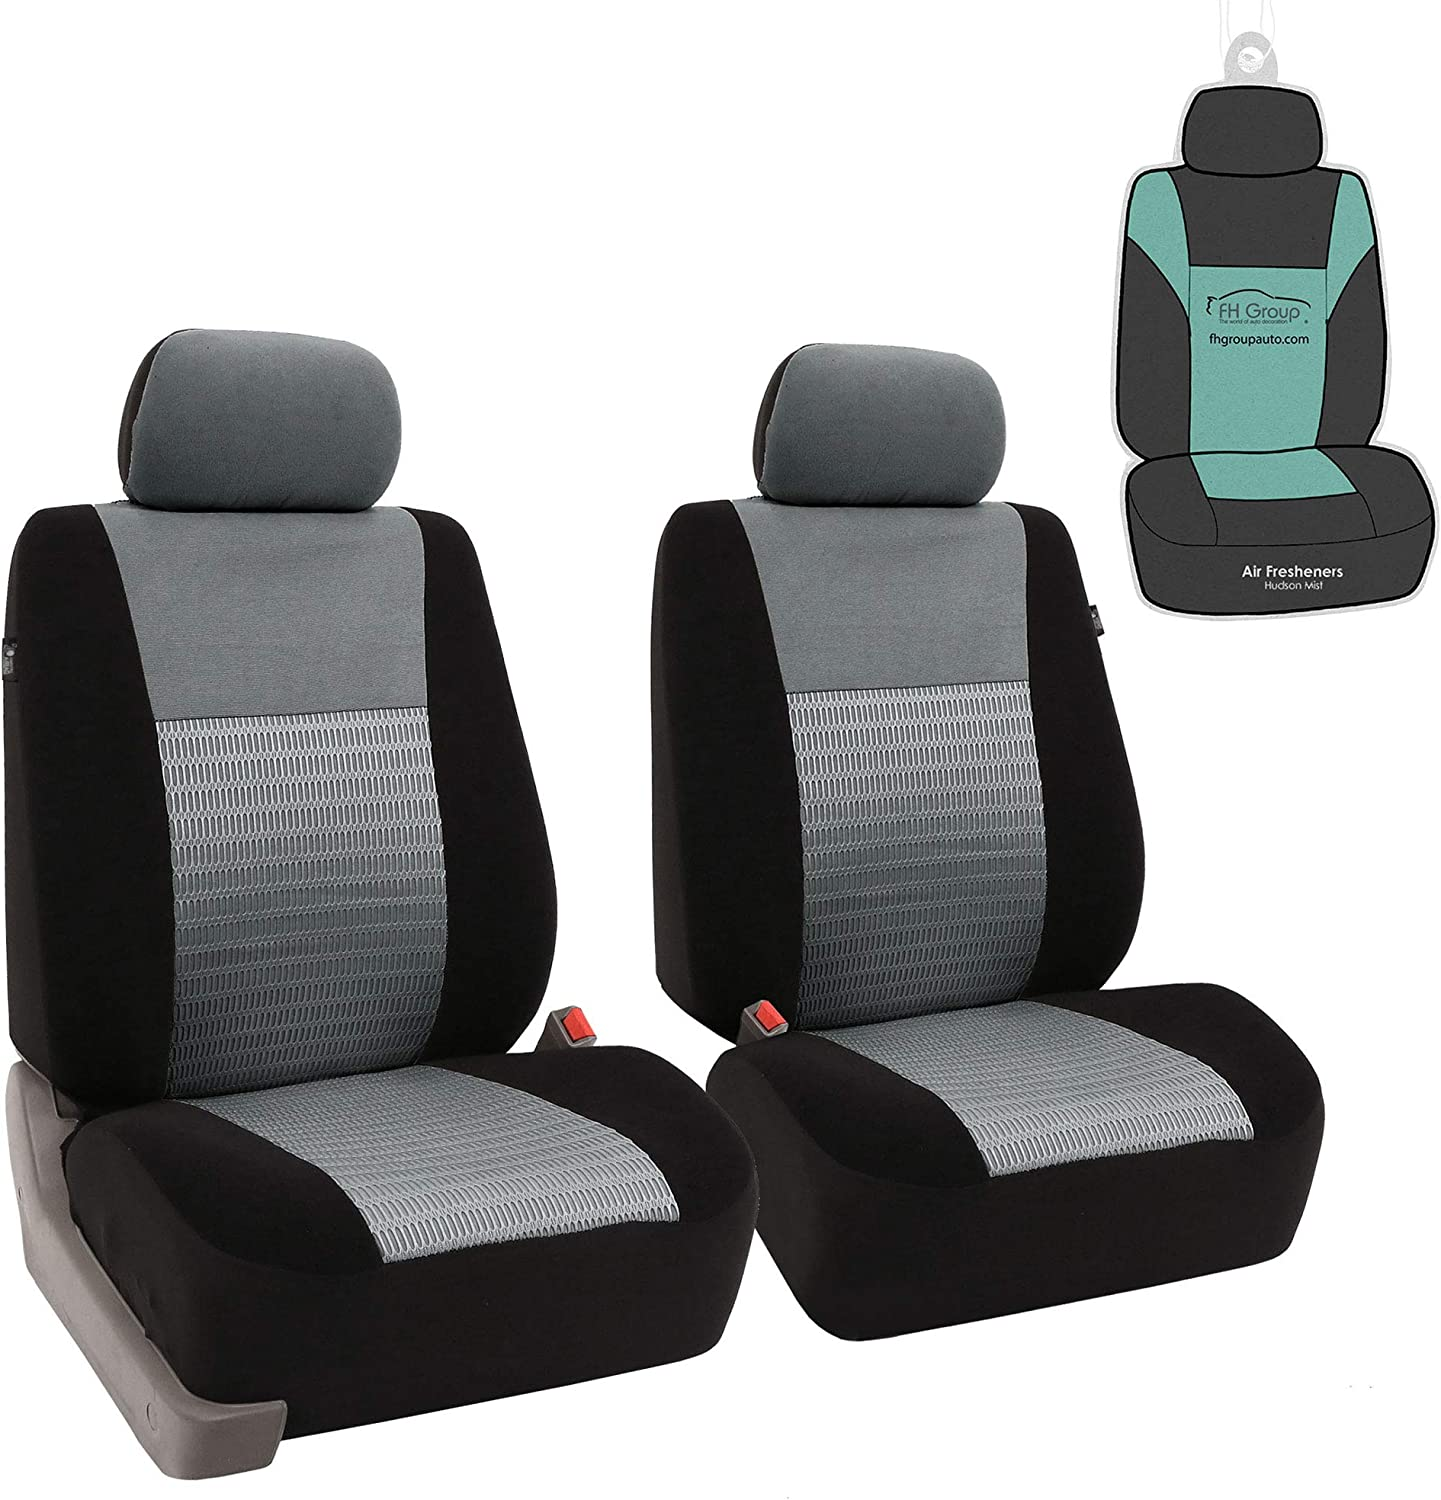 FH Group FB060102 Trendy Elegance Pair Set Bucket Car Seat Covers, (Airbag Compatible) w. Gift, Gray/Black Color-Fit Most Car, Truck, SUV, or Van